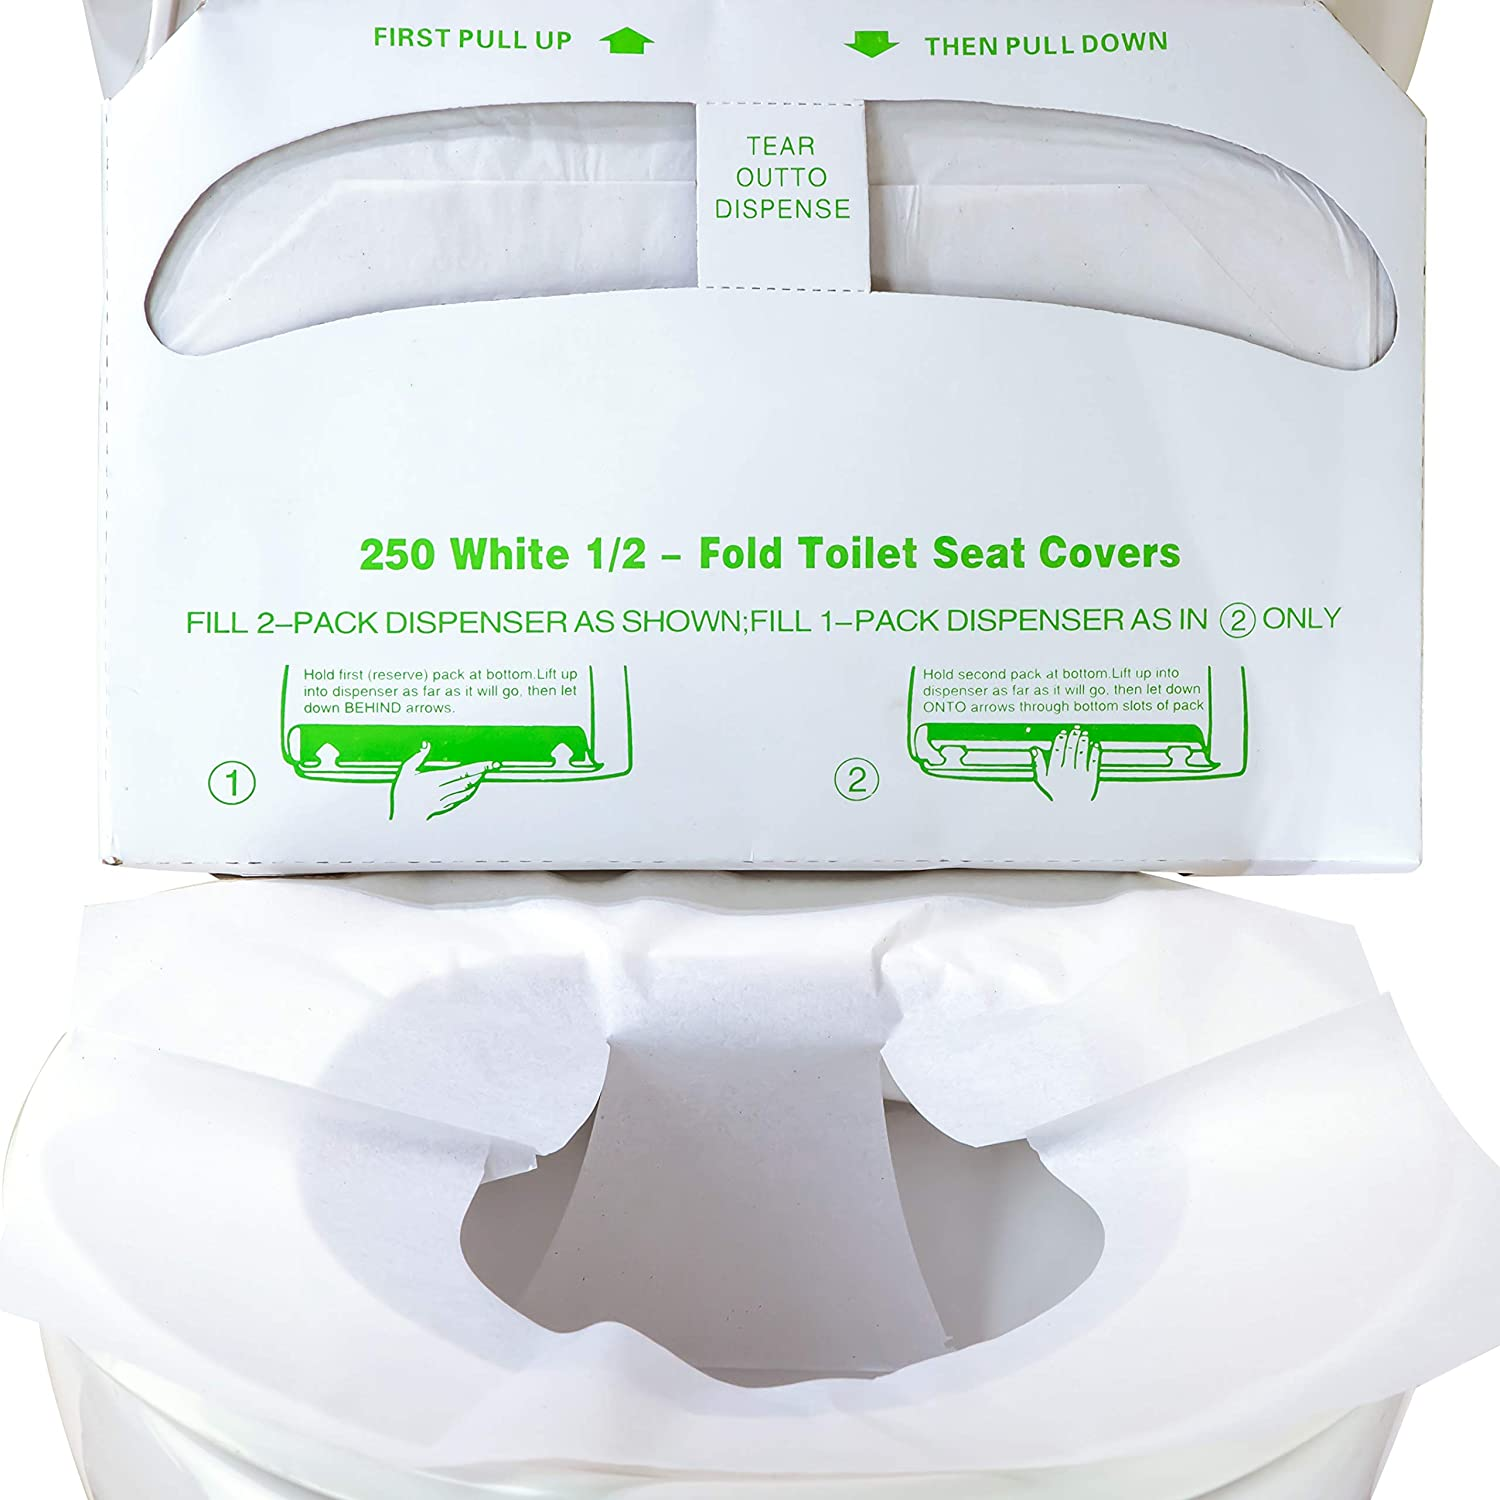 Fine Biodegradable Half Fold Toilet Seat Covers 500 Pk Self Flushing Disposable Potty Papers Keep Toilets Clean And Family Healthy Sanitary Paper Safety Ncnpc Chair Design For Home Ncnpcorg